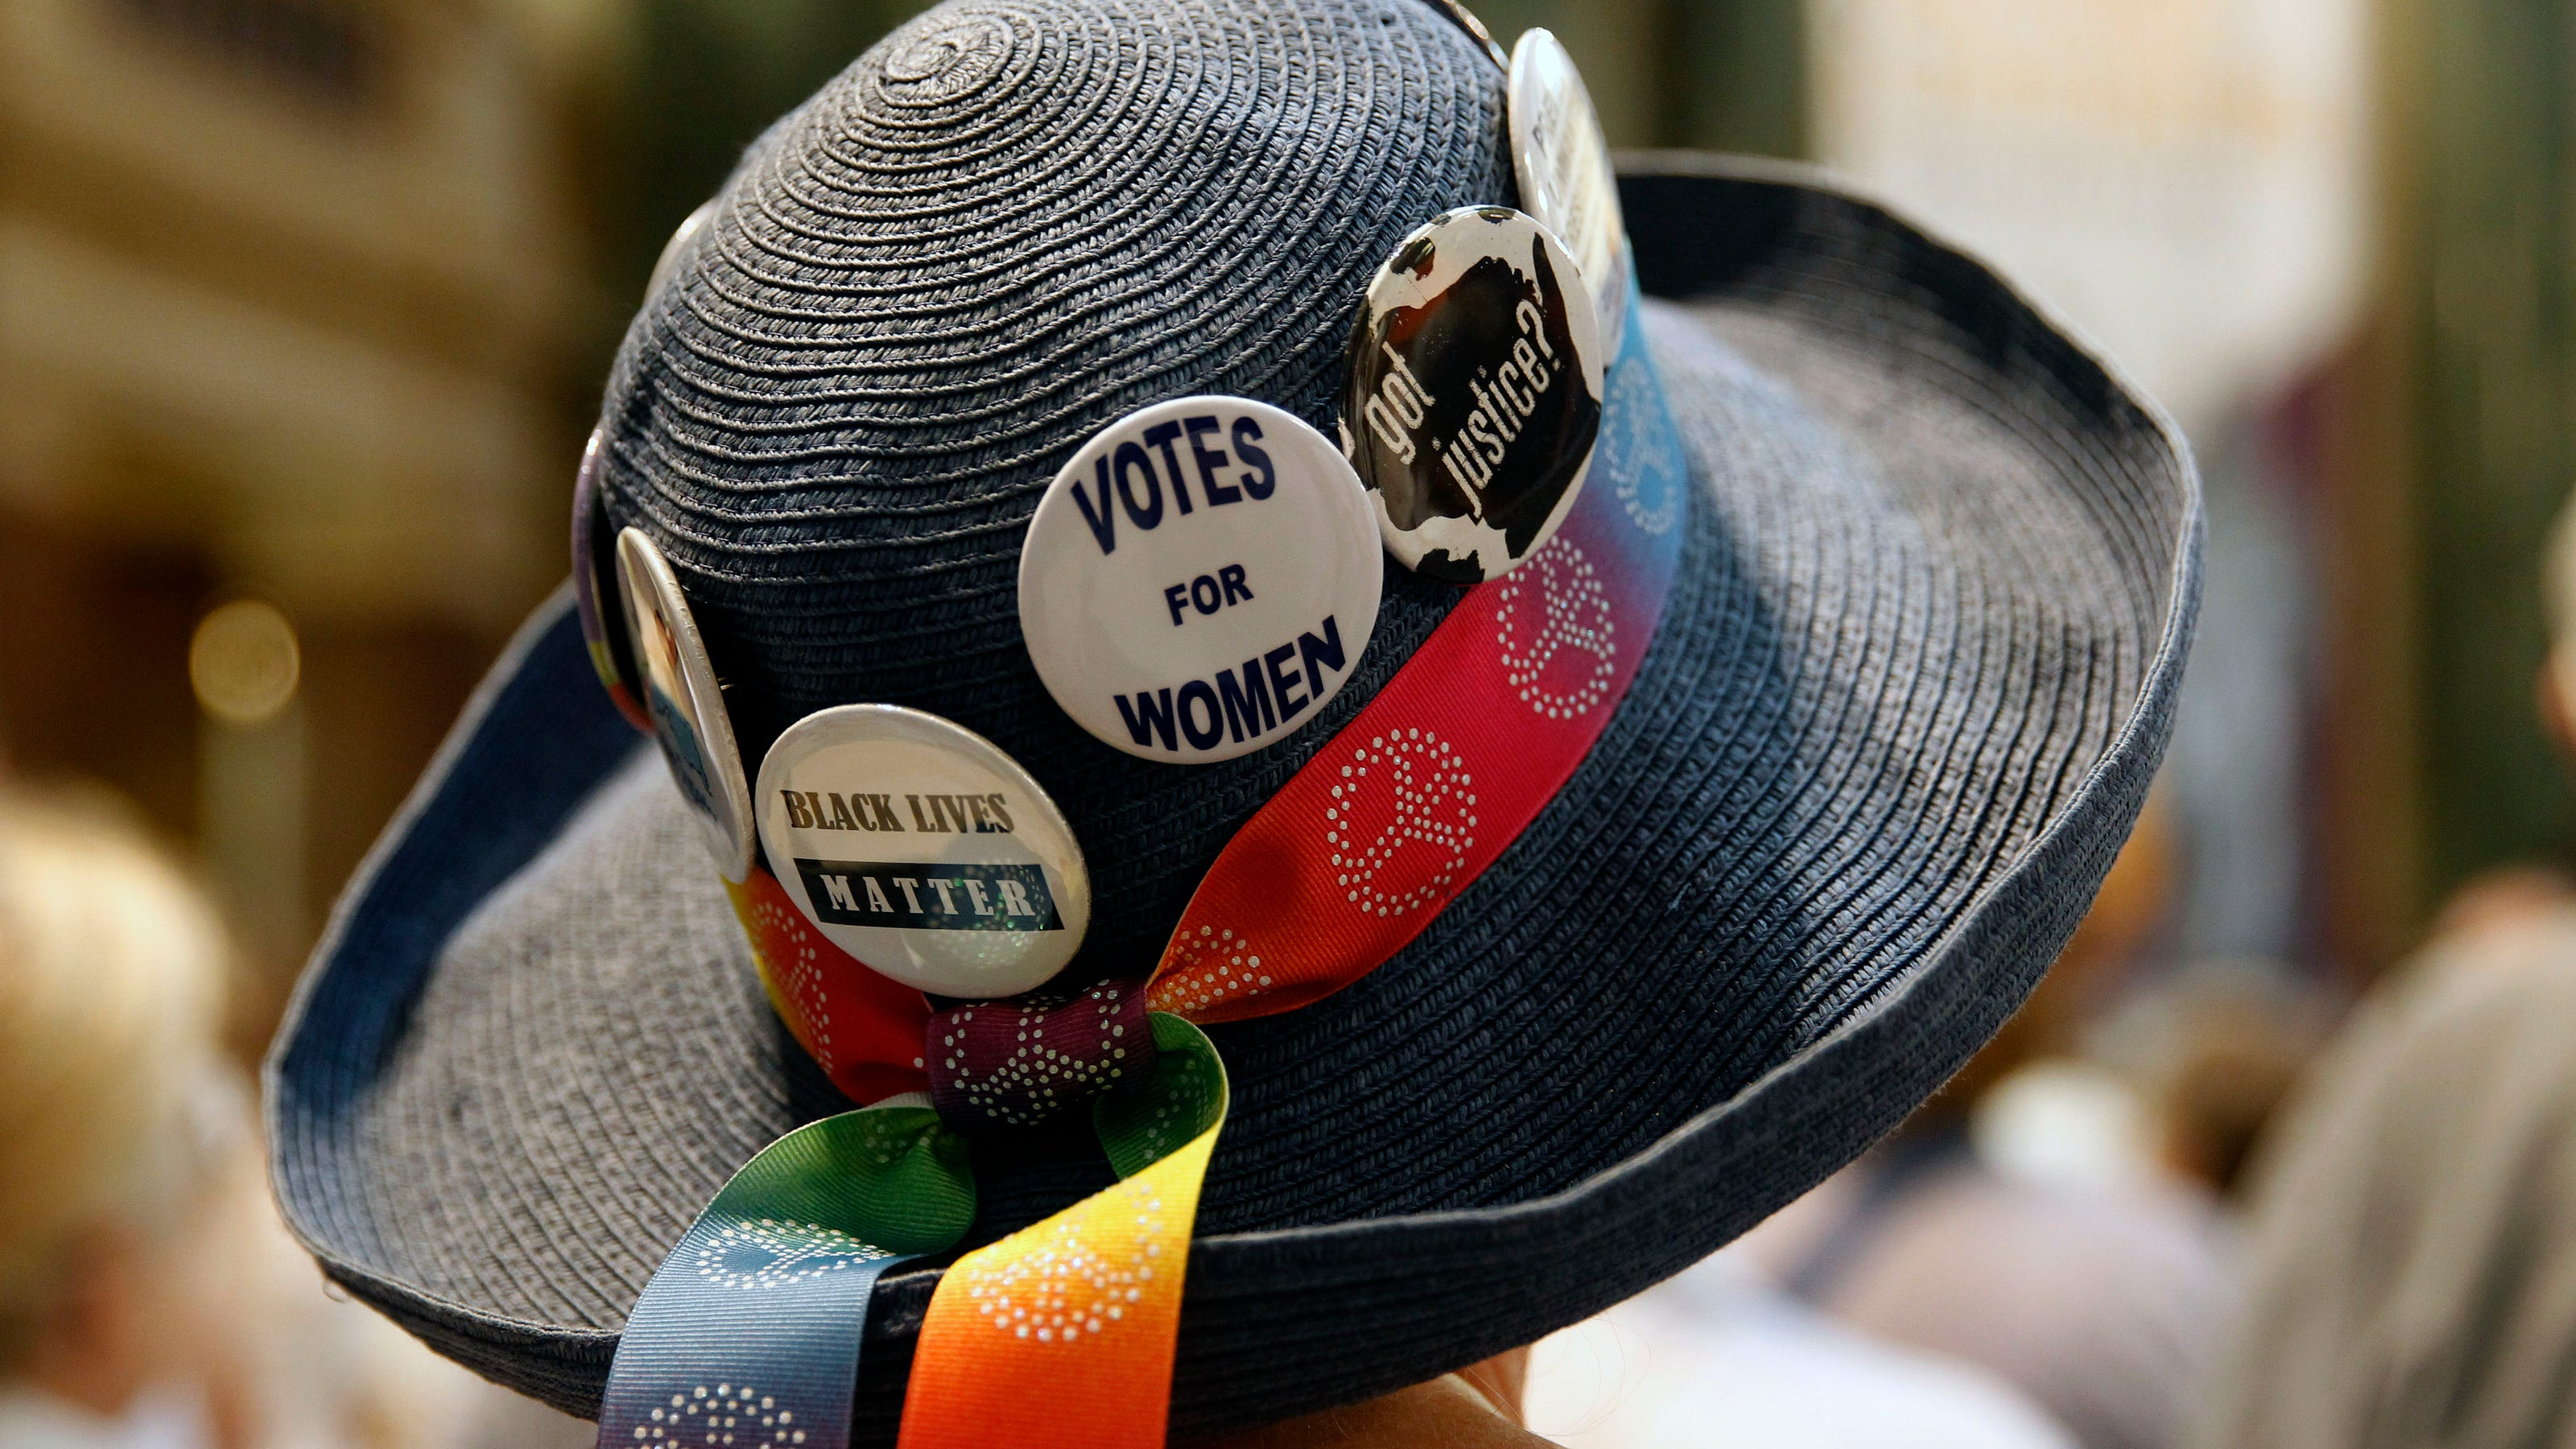 Guam To Mark 100 Years Of Women's Suffrage With Most